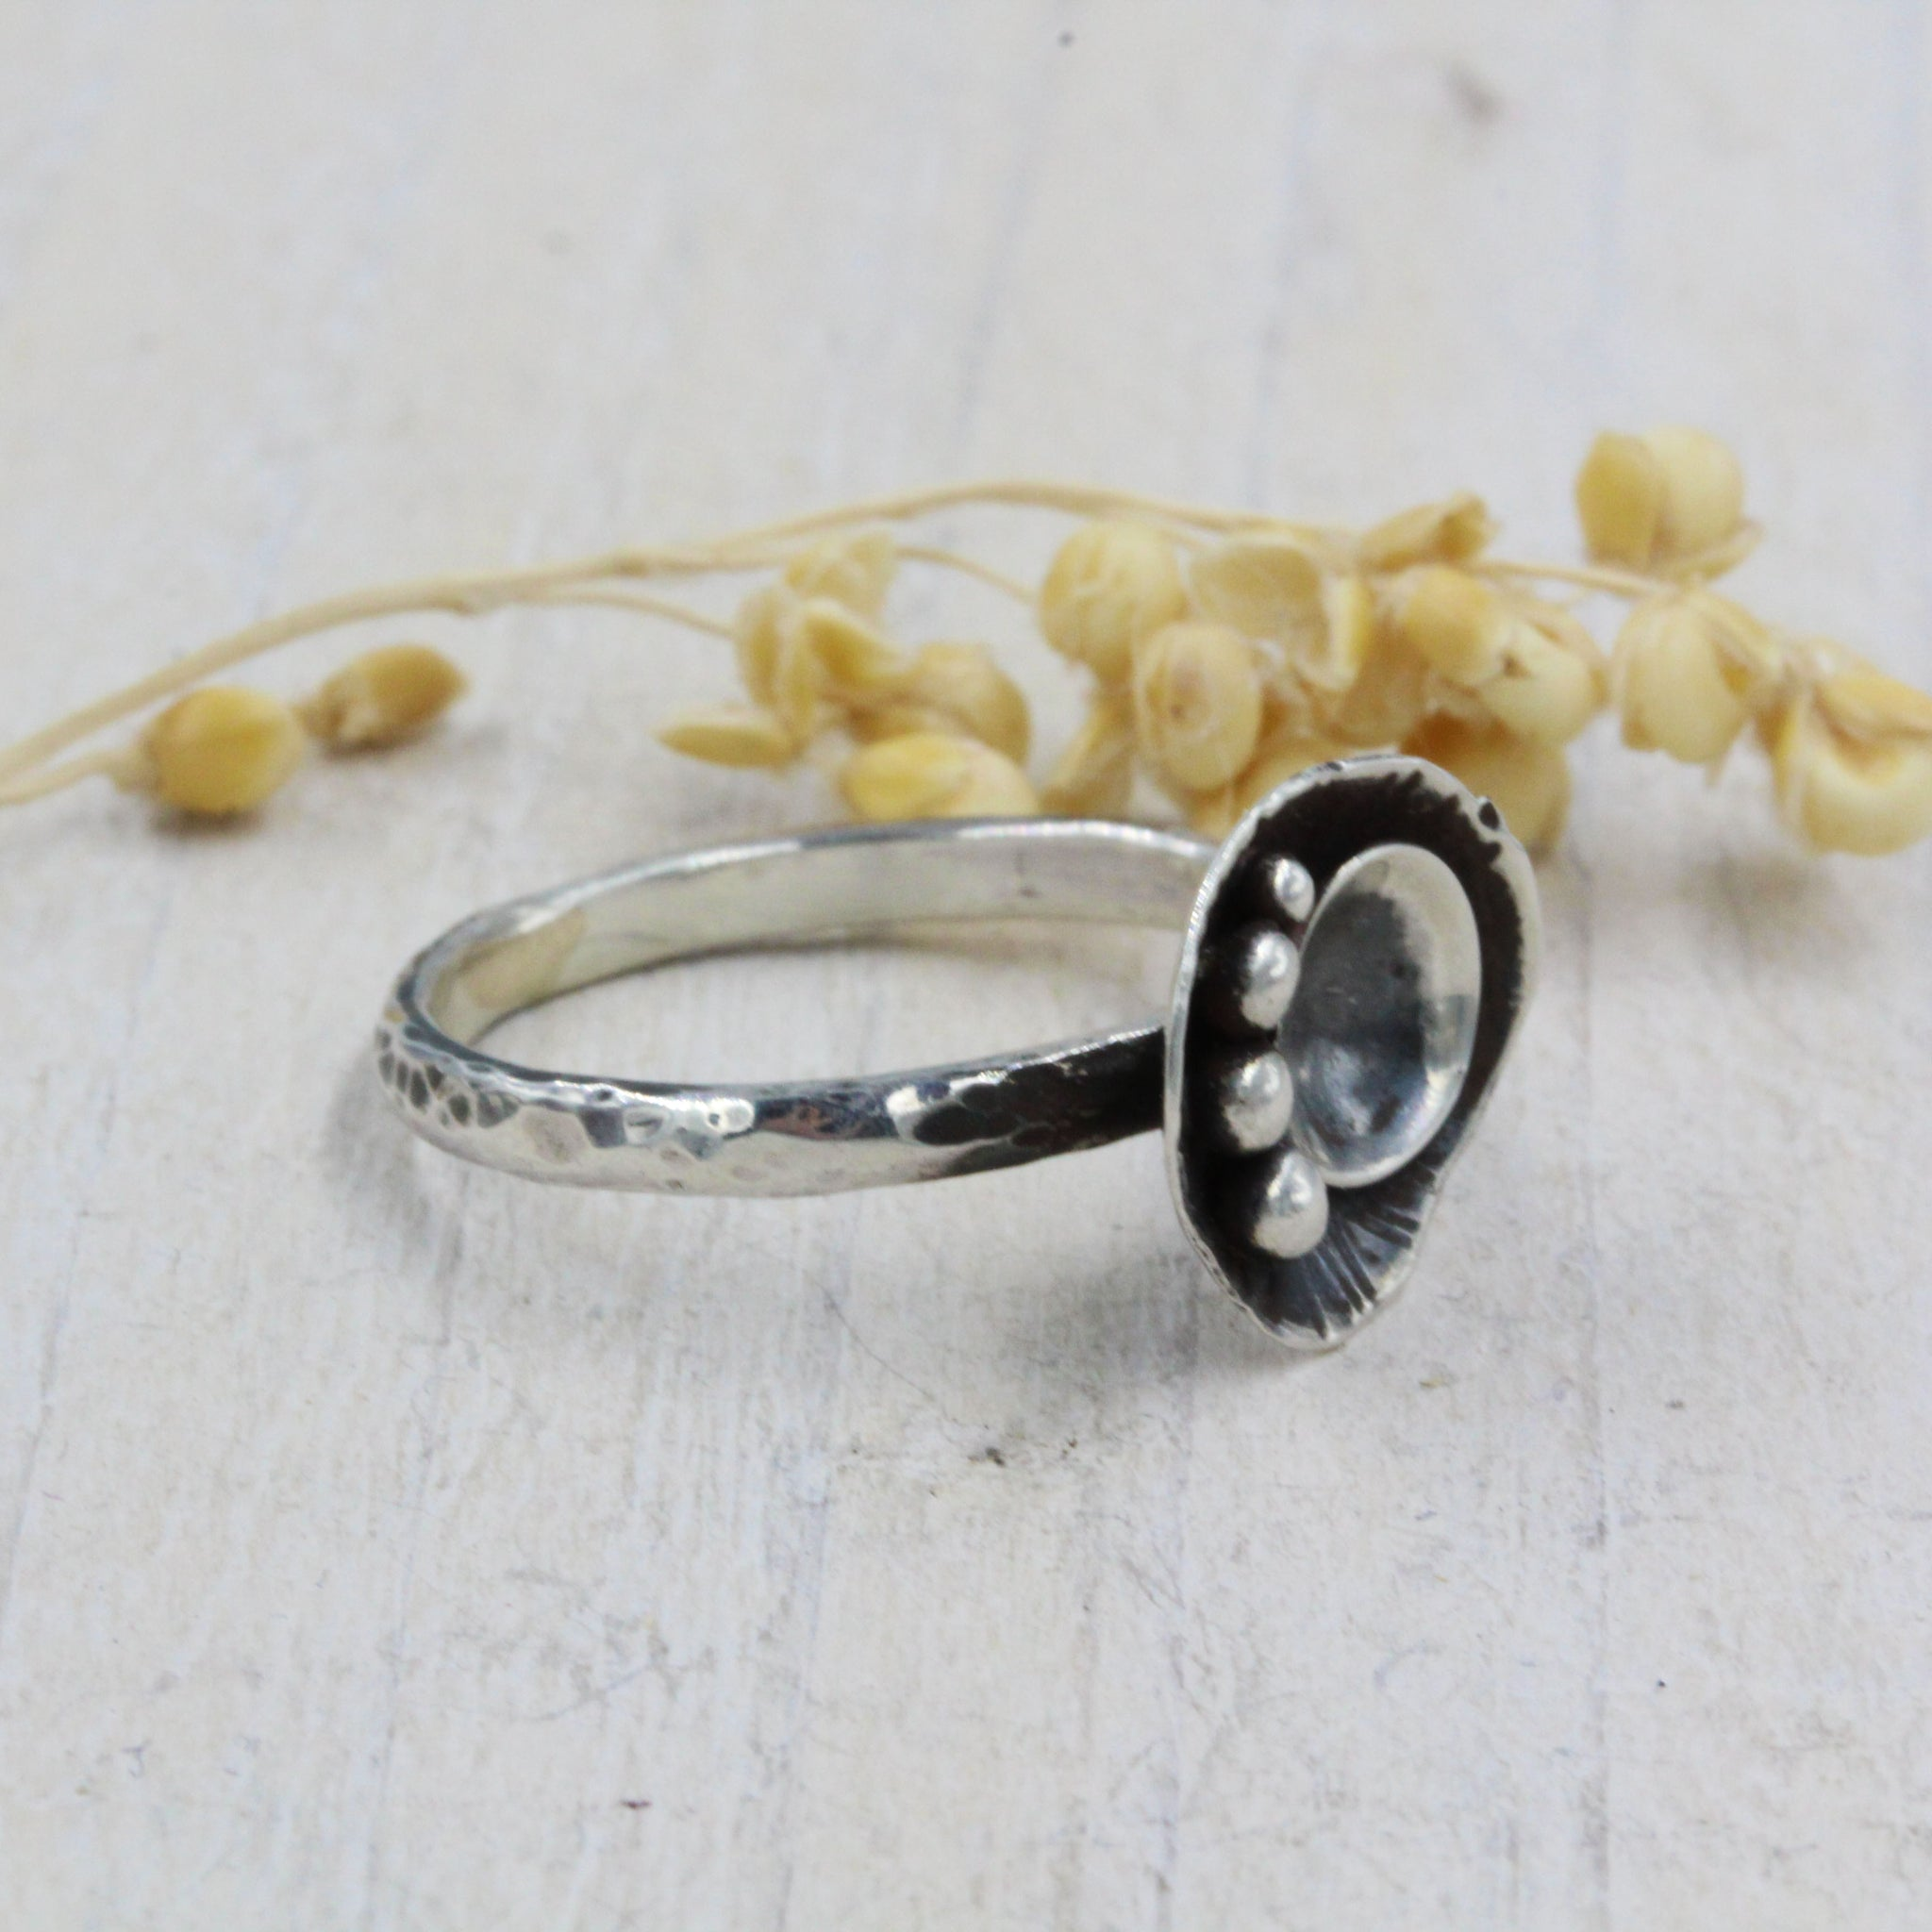 Handmade sea inspired, sterling silver ring